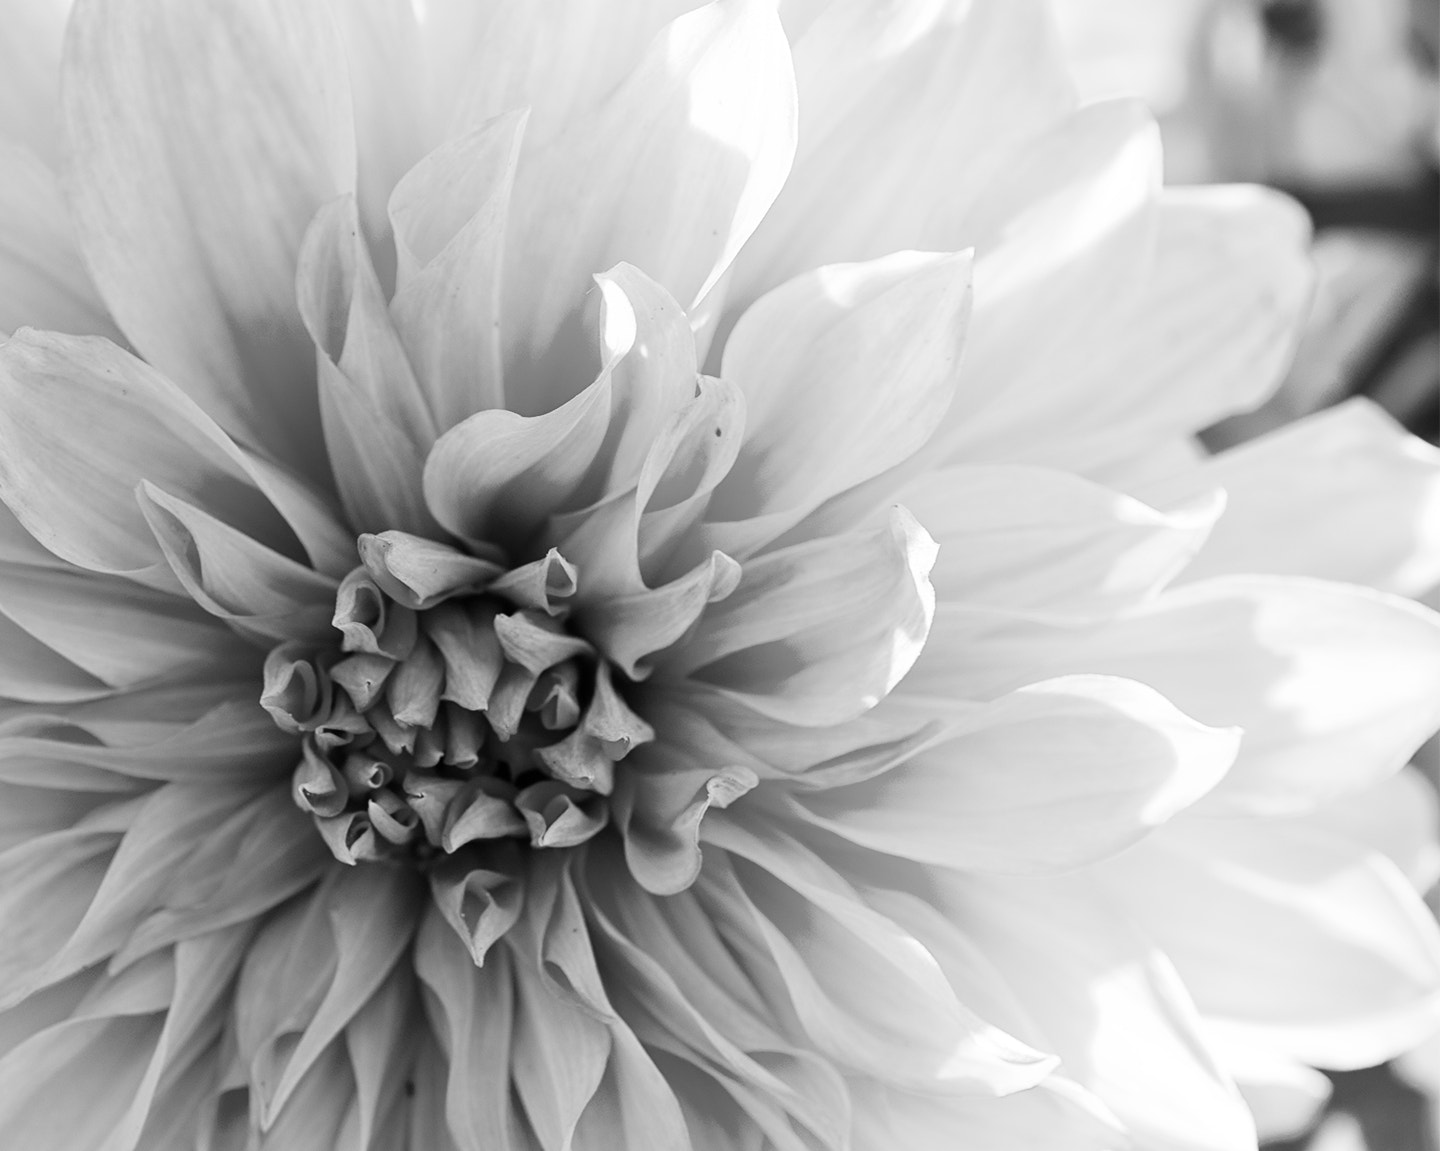 Photograph The Dahlia by shutterboy on 500px